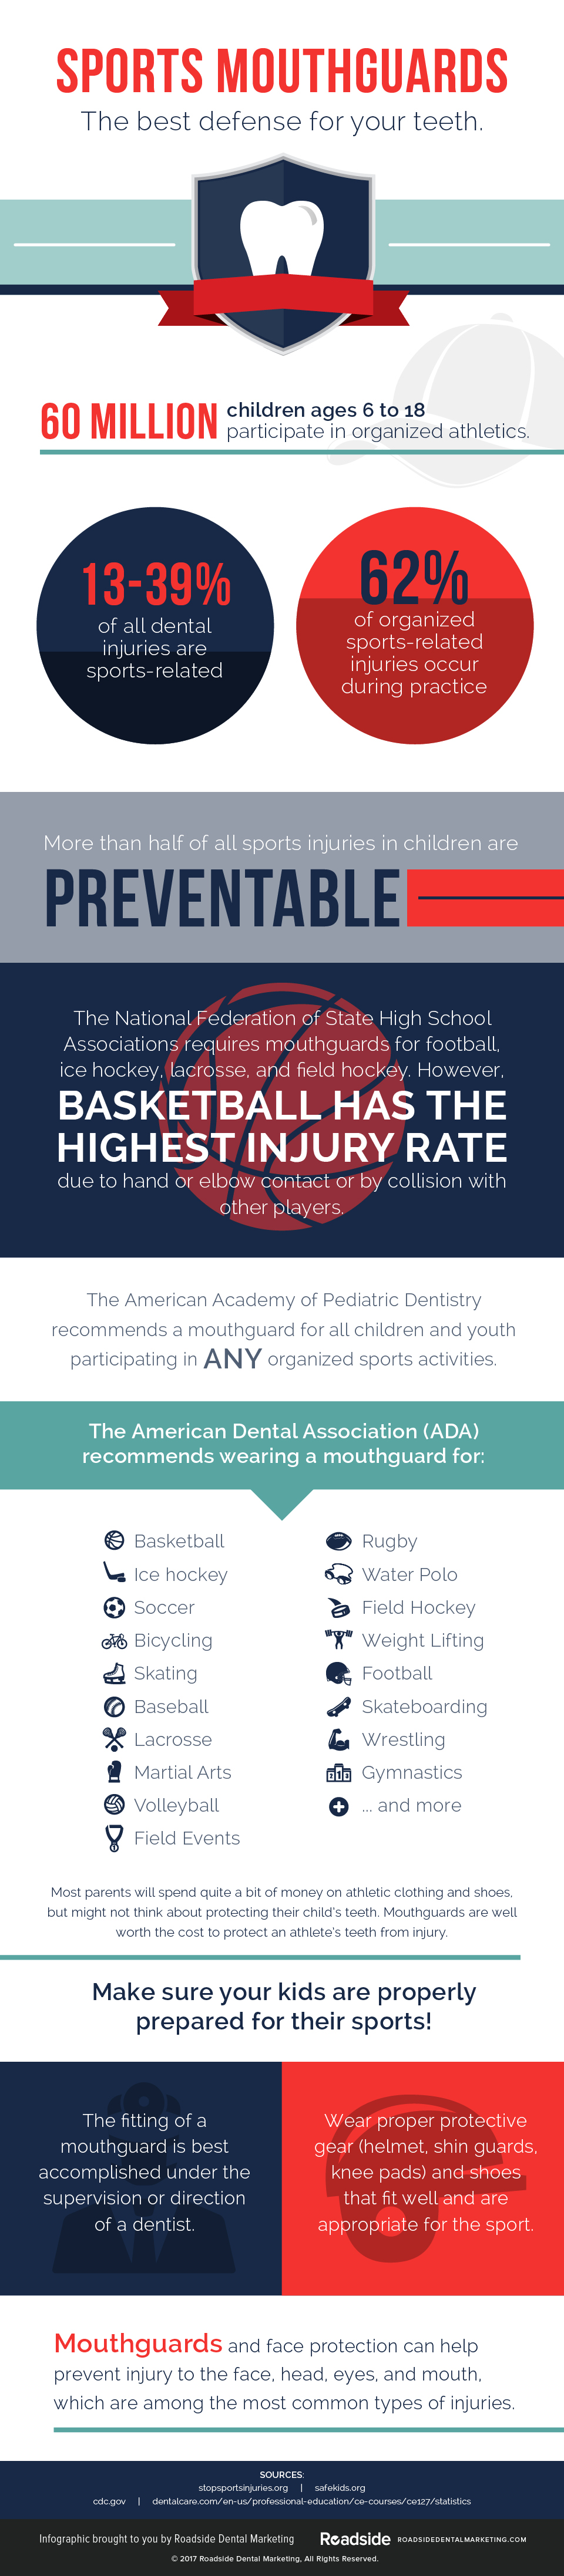 Sports mouthguards infographic